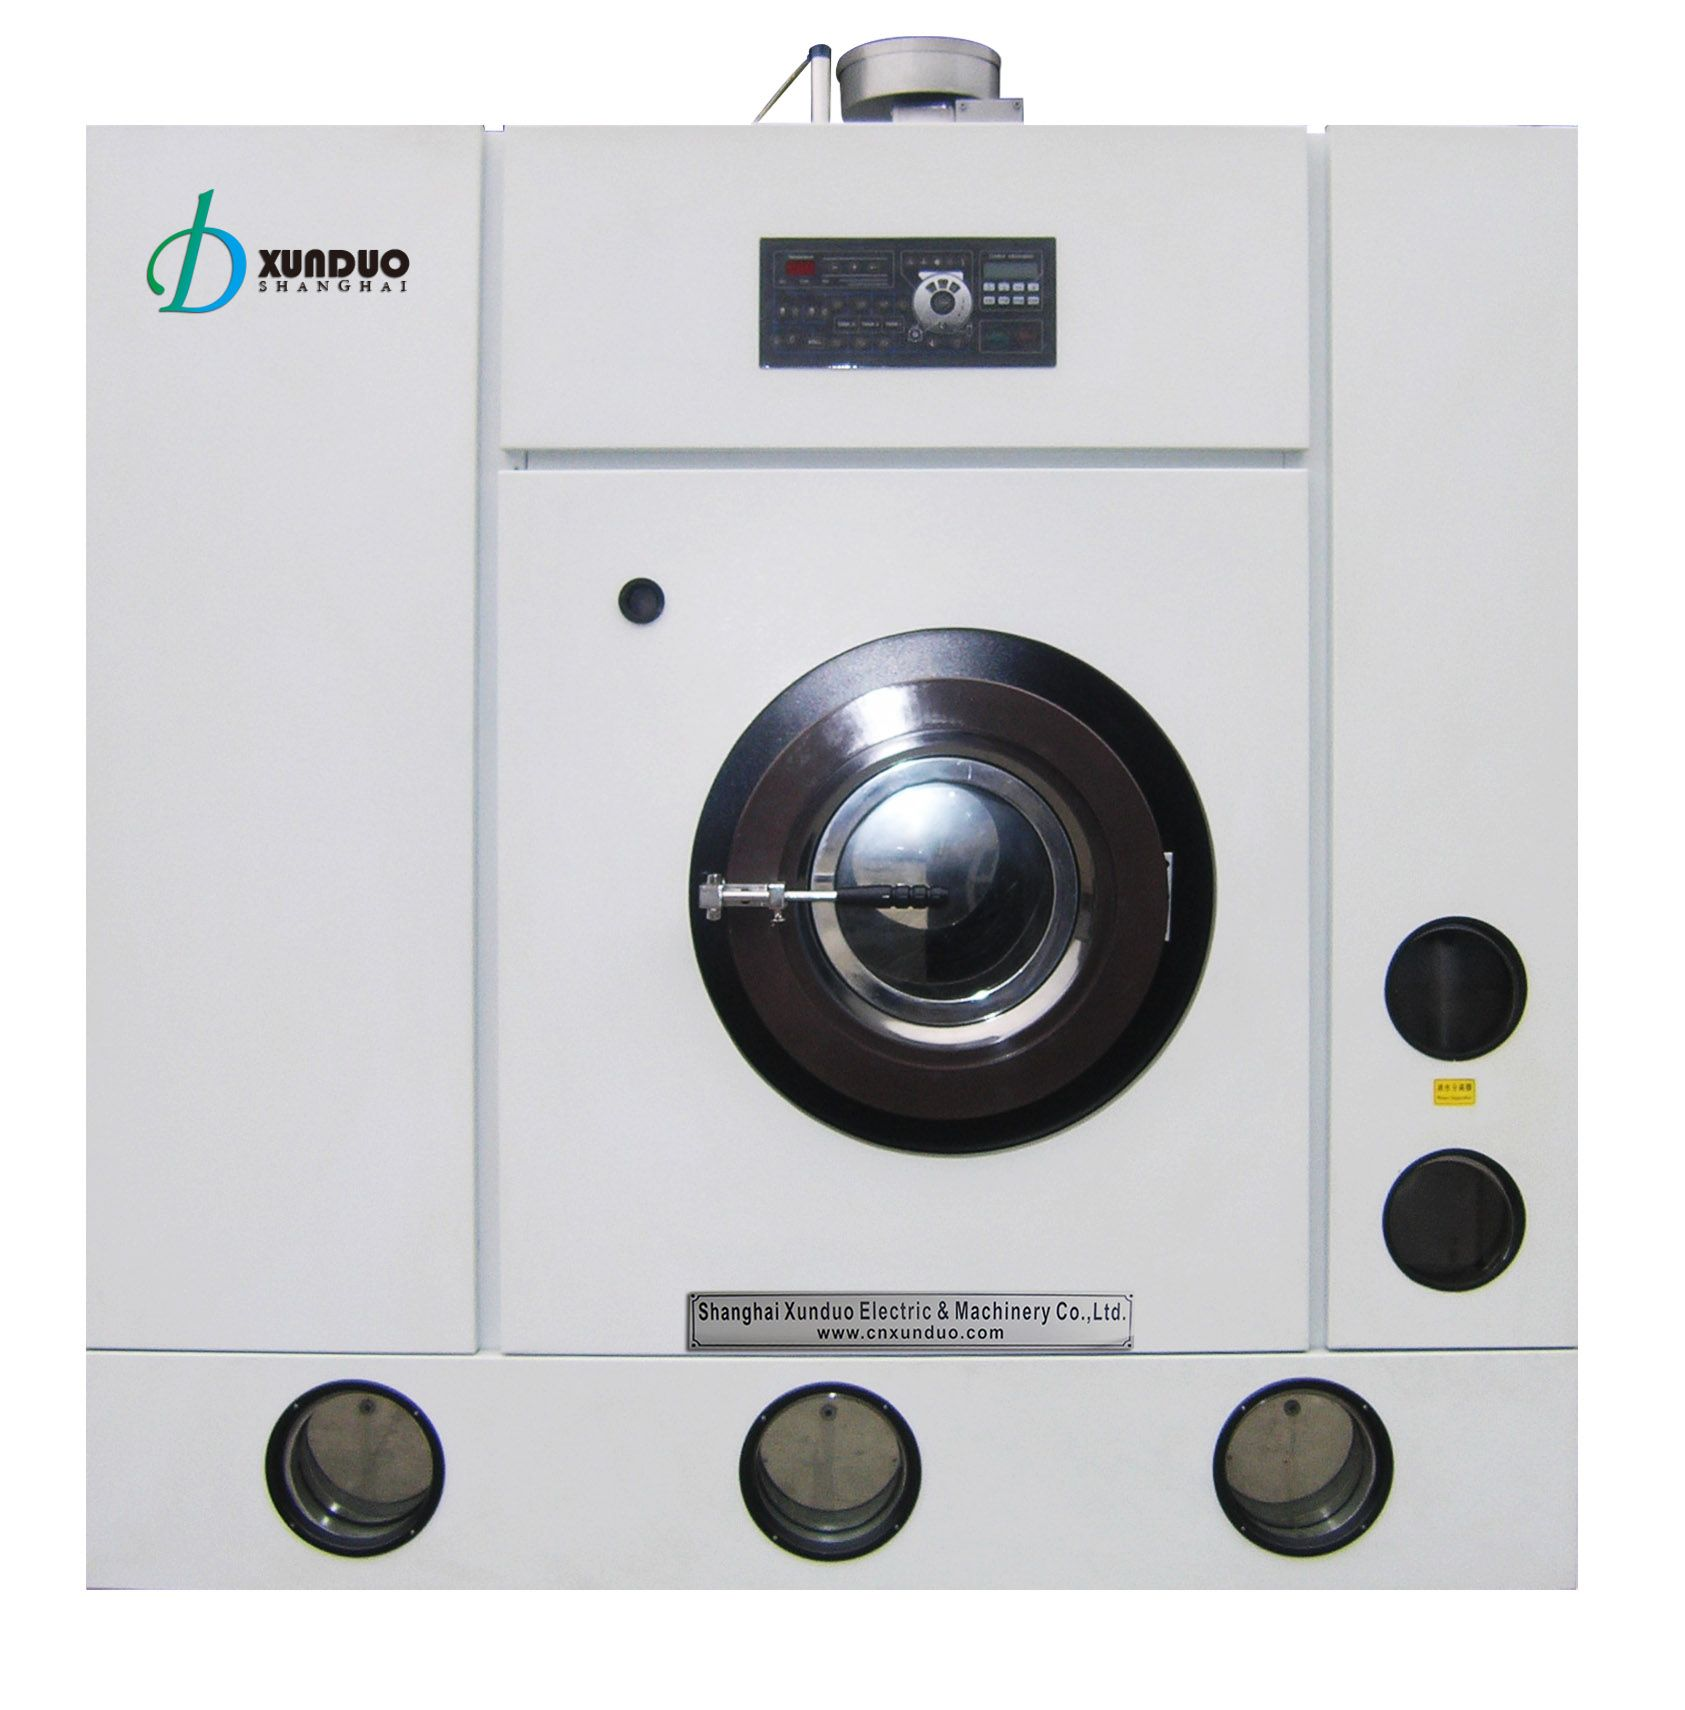 Dry Cleaner Machine Commercial Laundry Equipment With Images